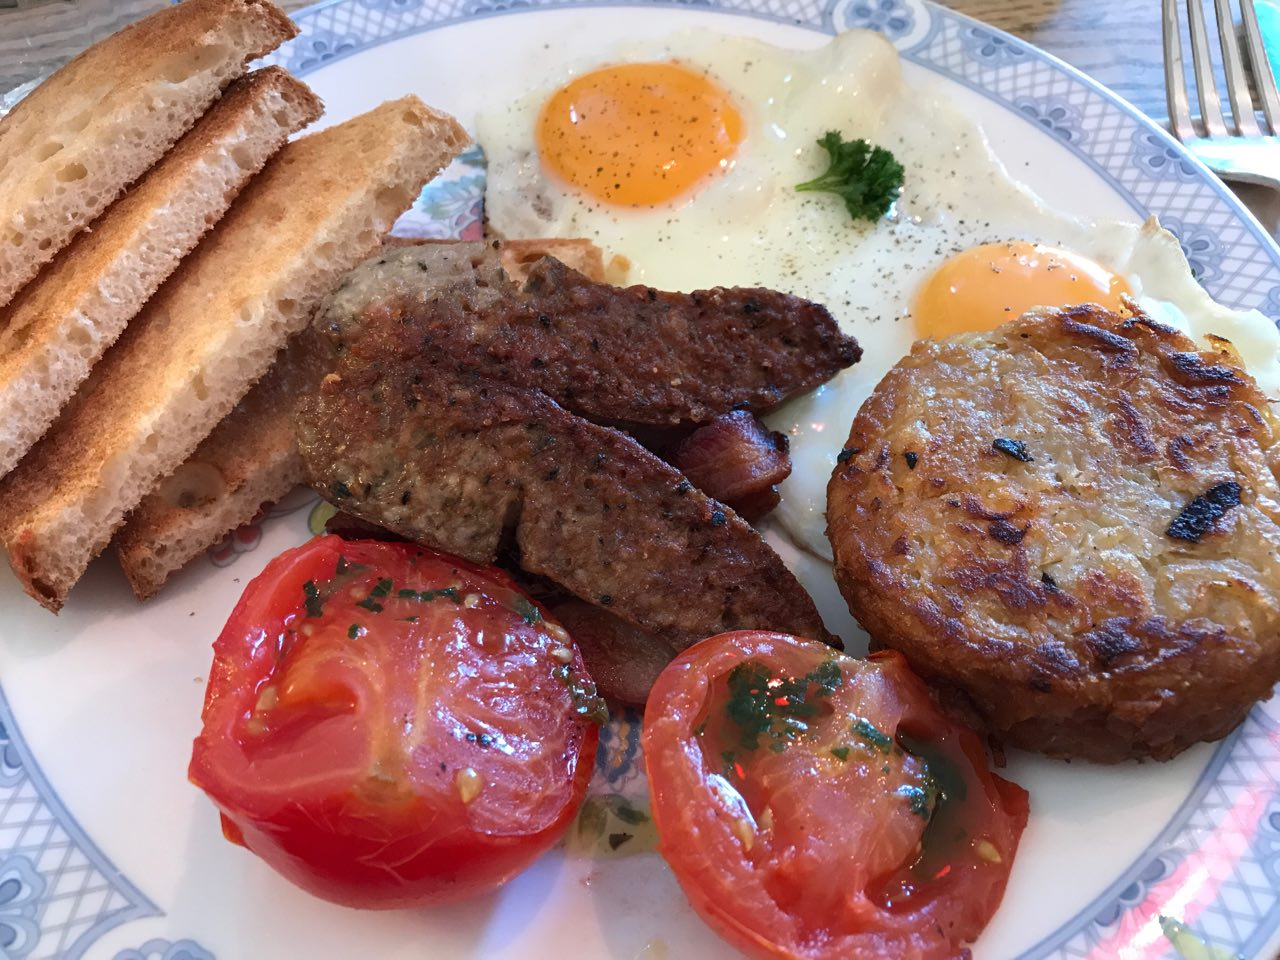 English breakfast at The Haberdashery